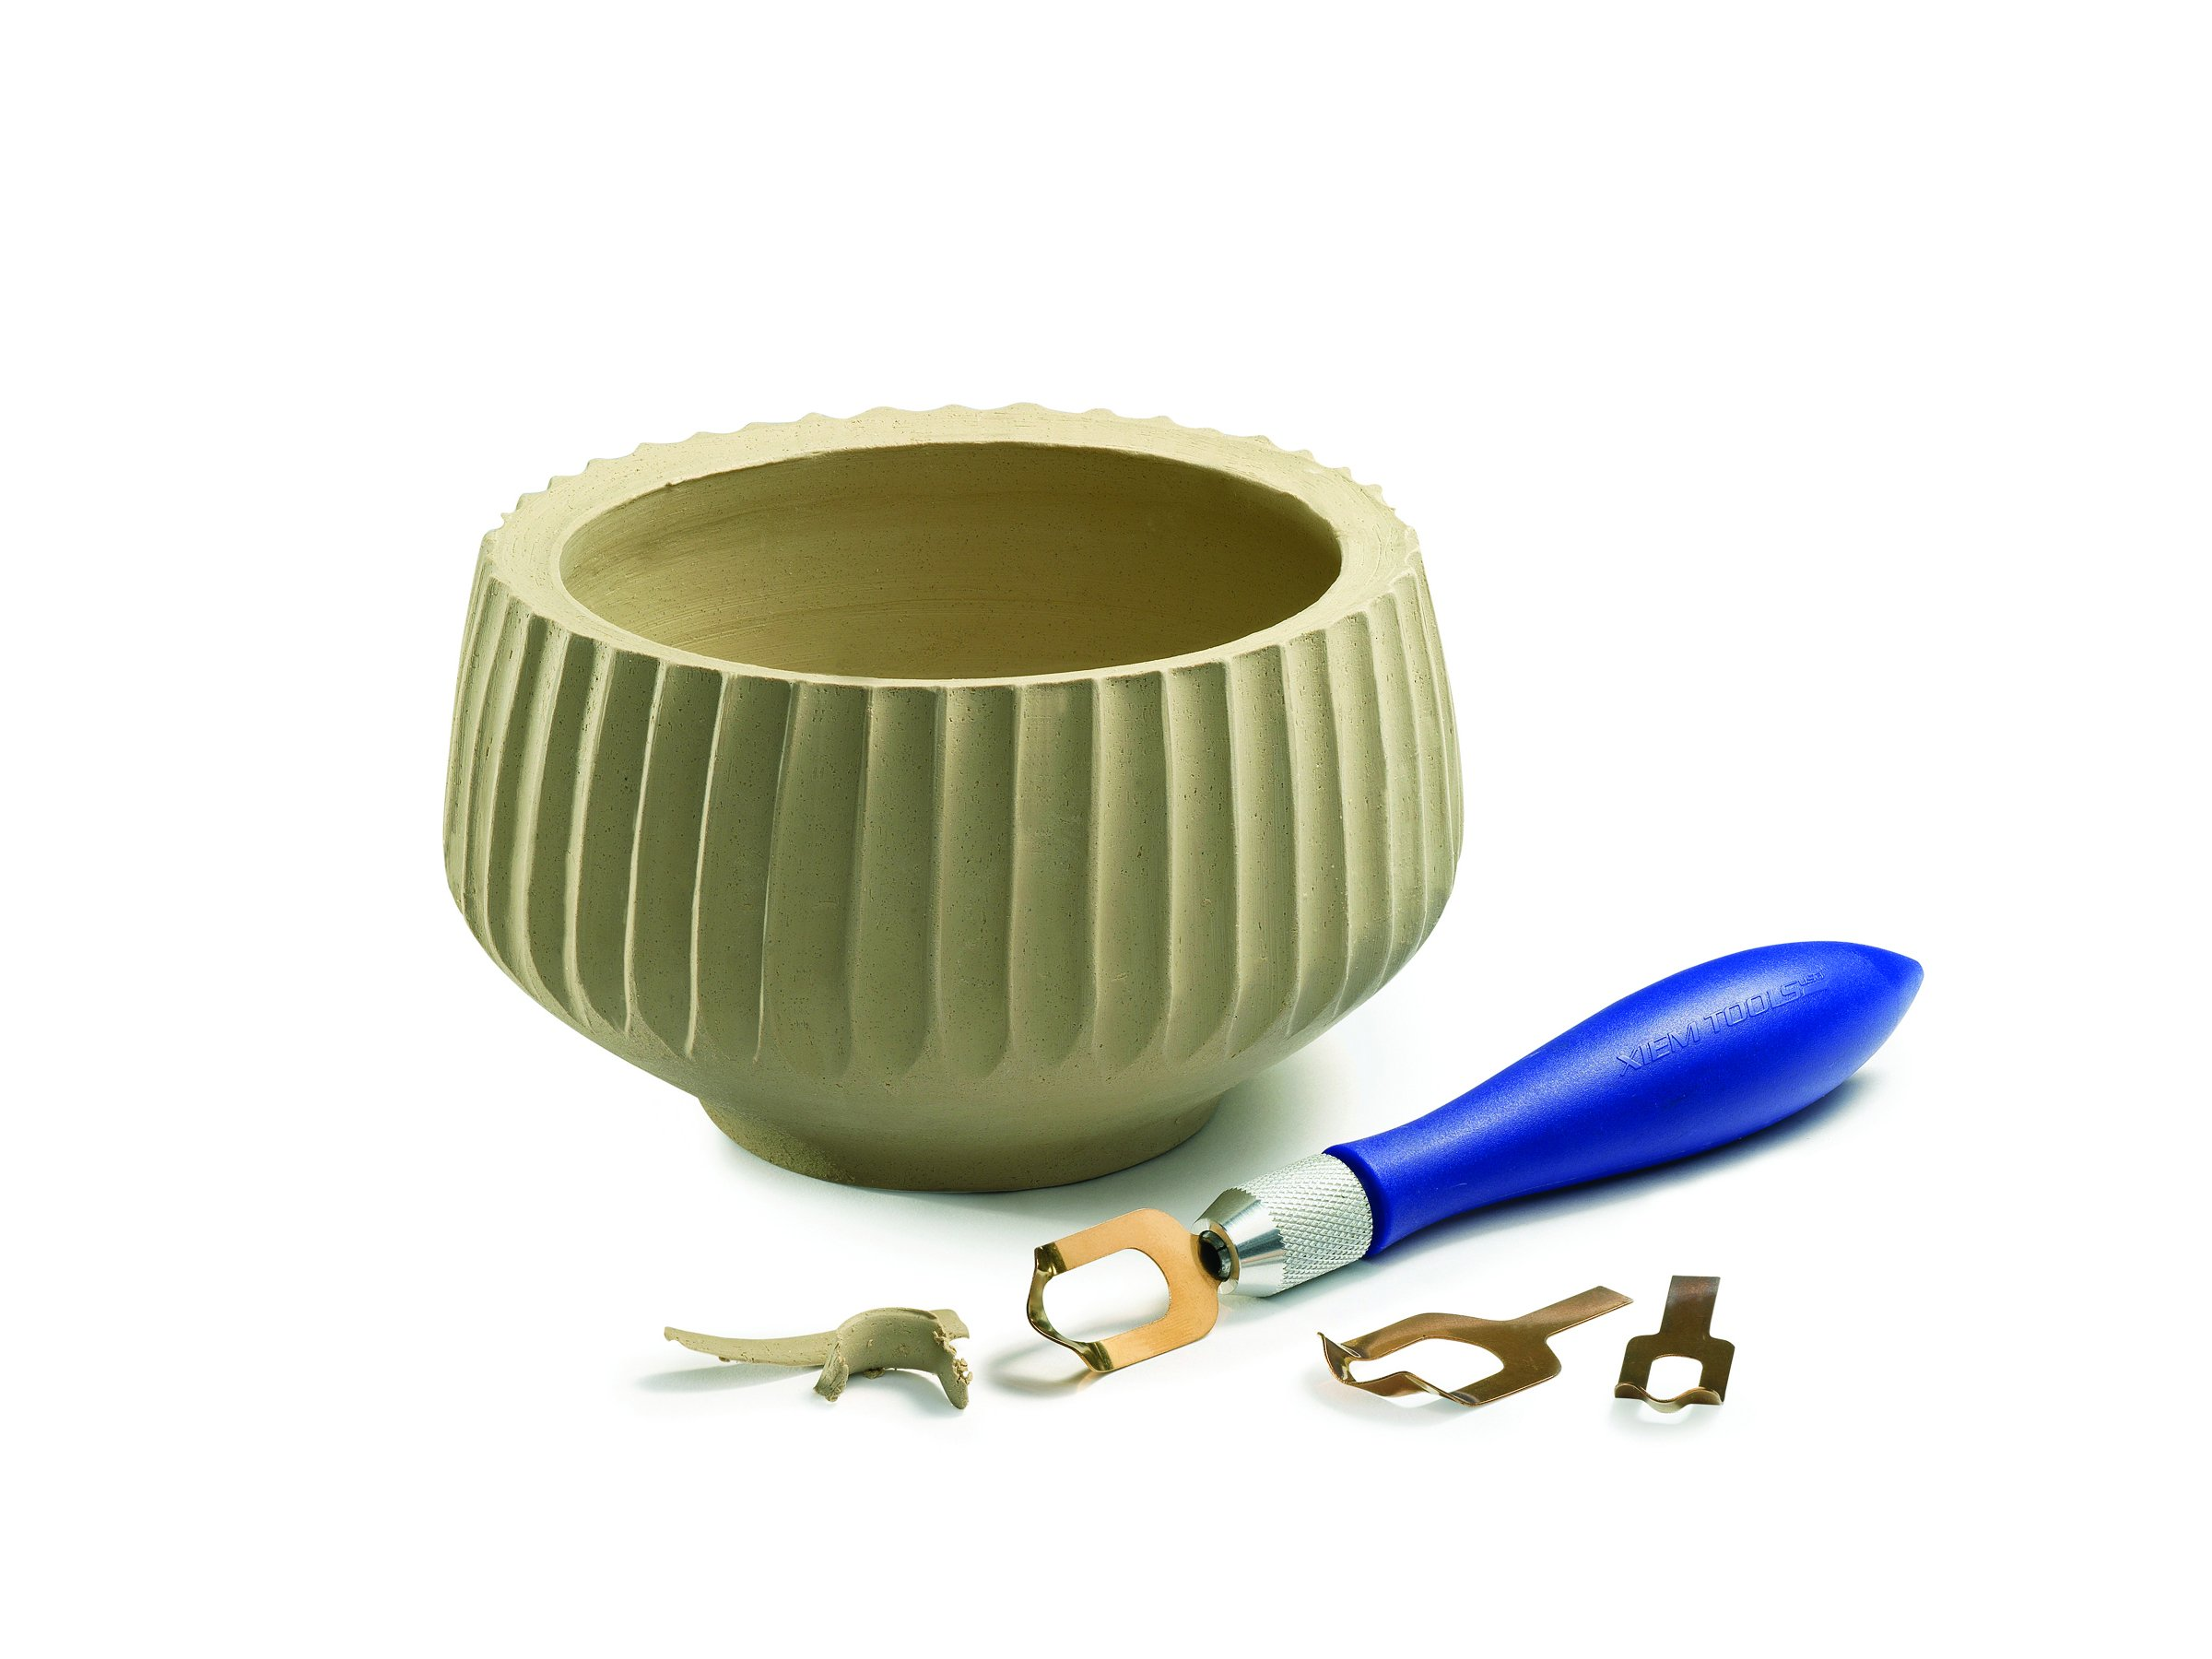 Xiem Tools USA Fluting Tool Set for Clay and Ceramics by XIEM (Image #3)